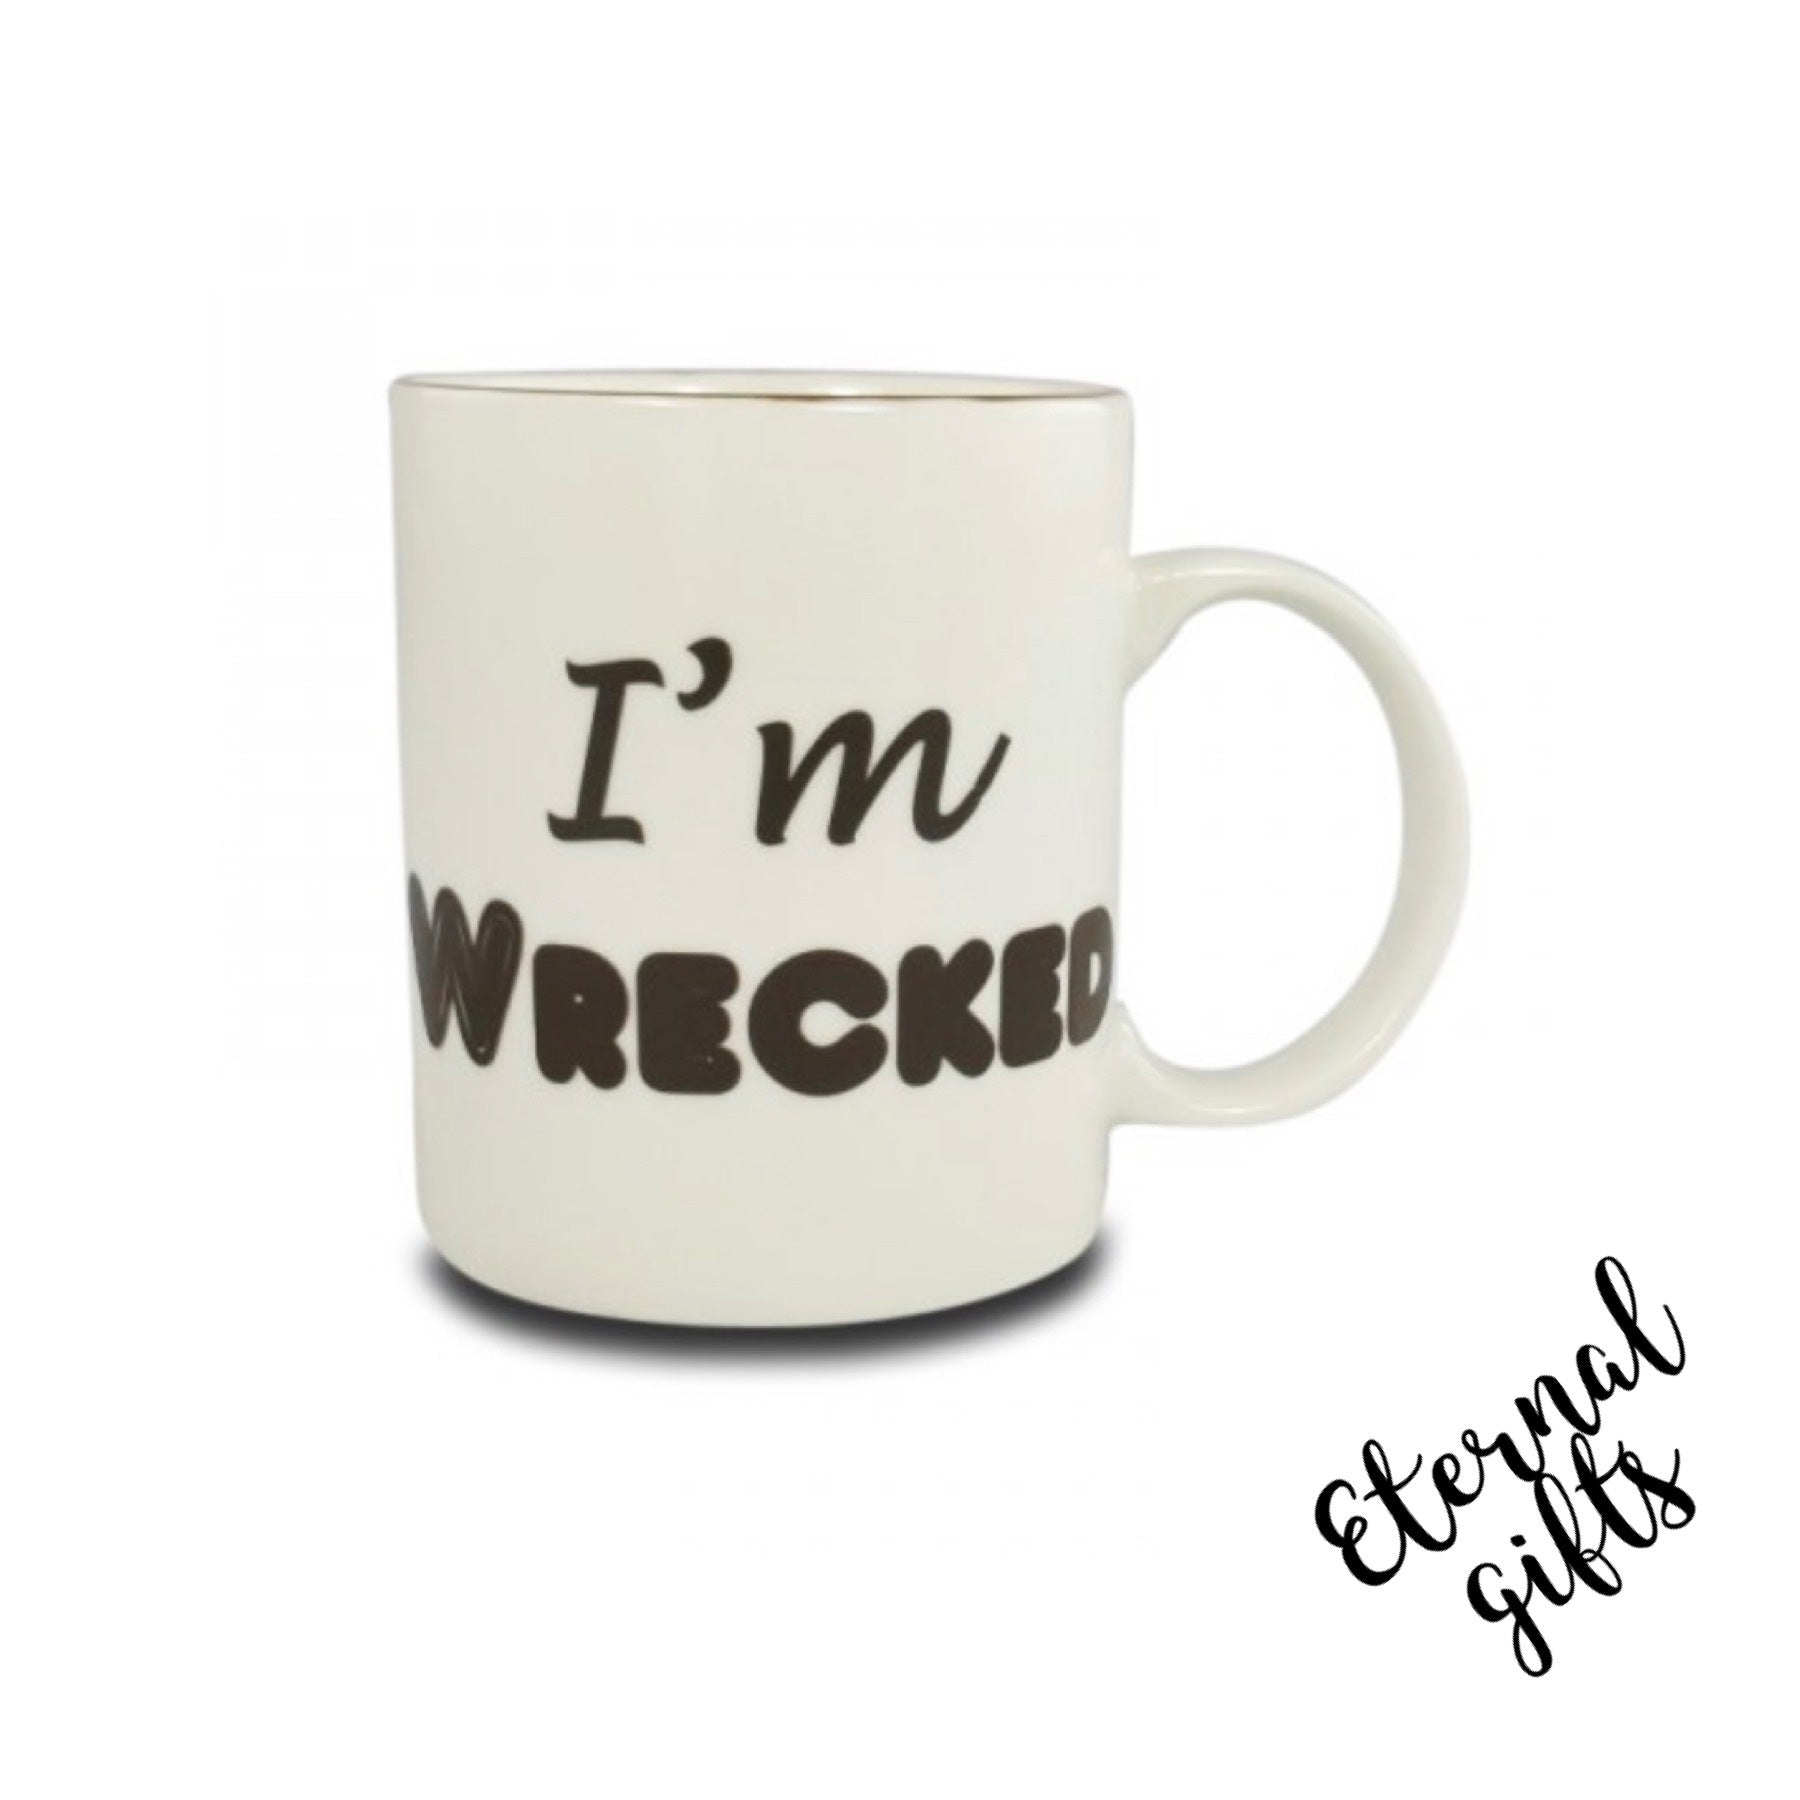 I'm Wrecked Mug - Shannonbridge Pottery (Boxed)